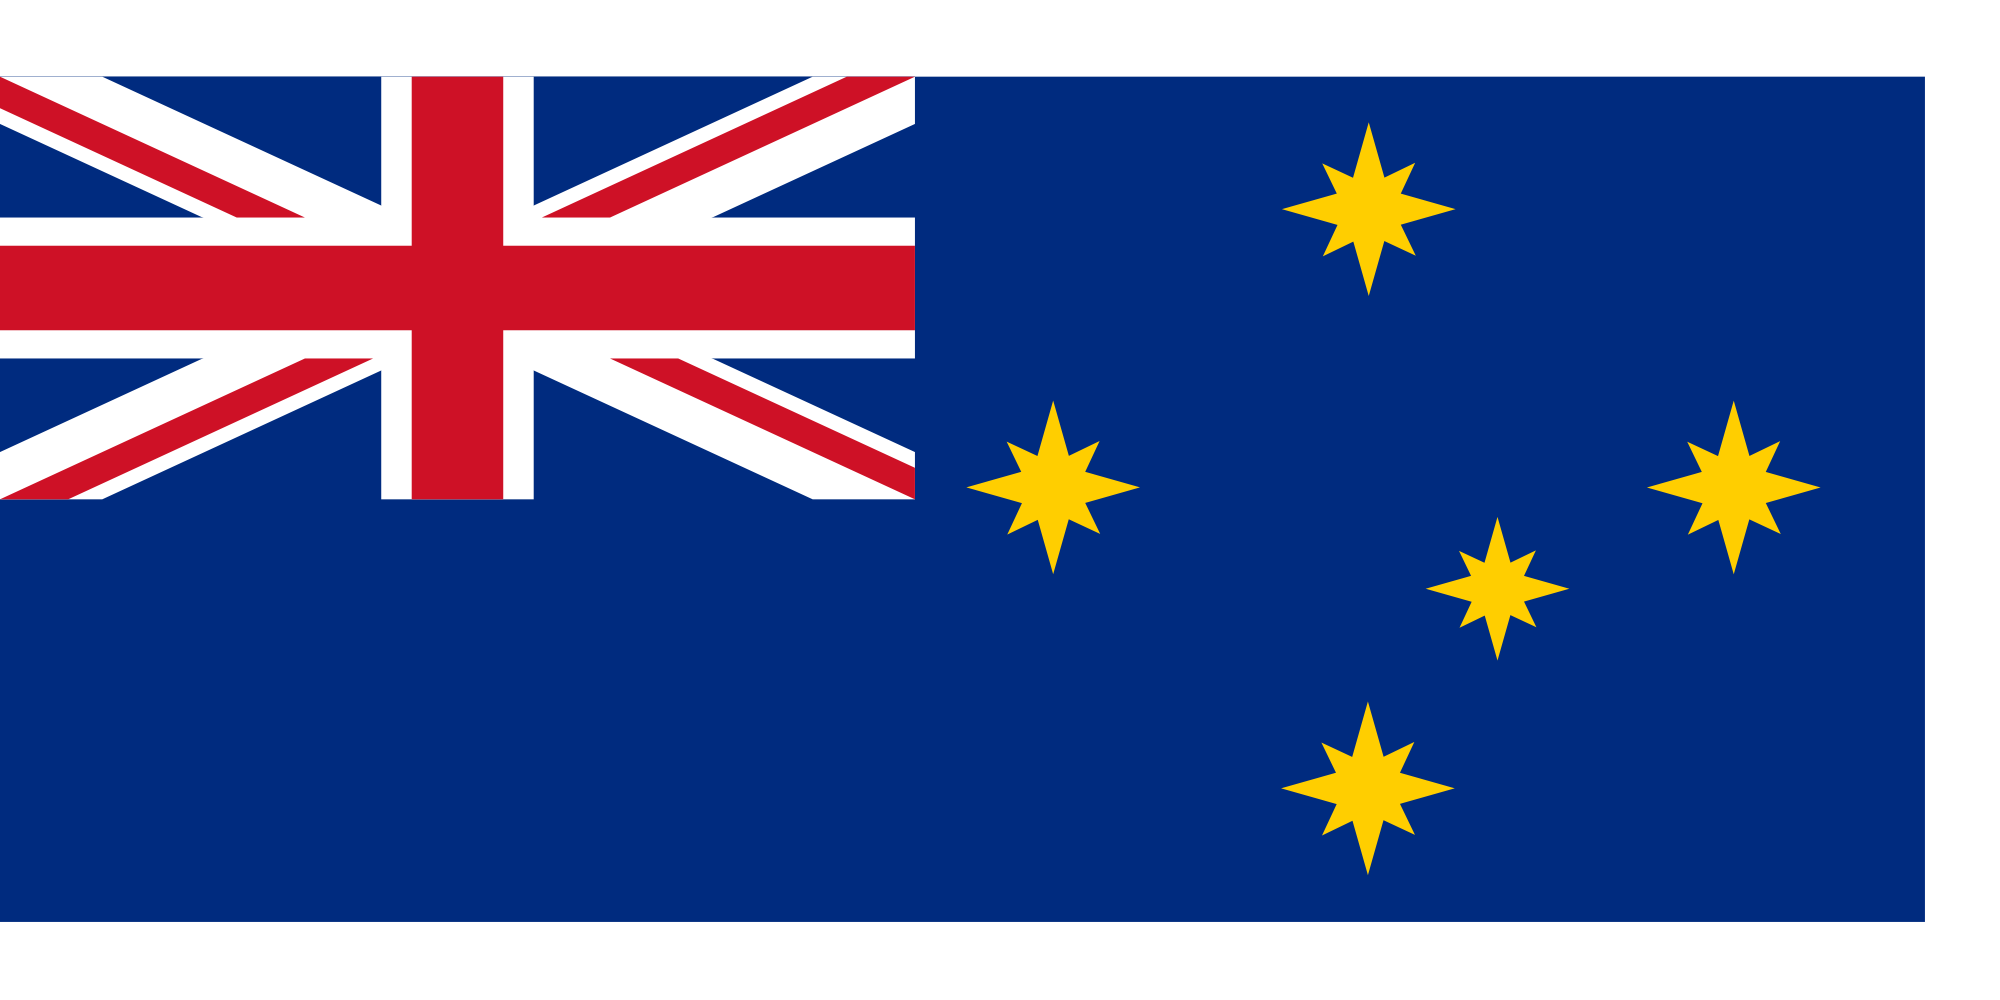 The Australian Anti Transportation League Flag 1849 Is A Flag Used Historically By Members Of The Australasian Anti Transporta Flag Australia Flag Irish Flag